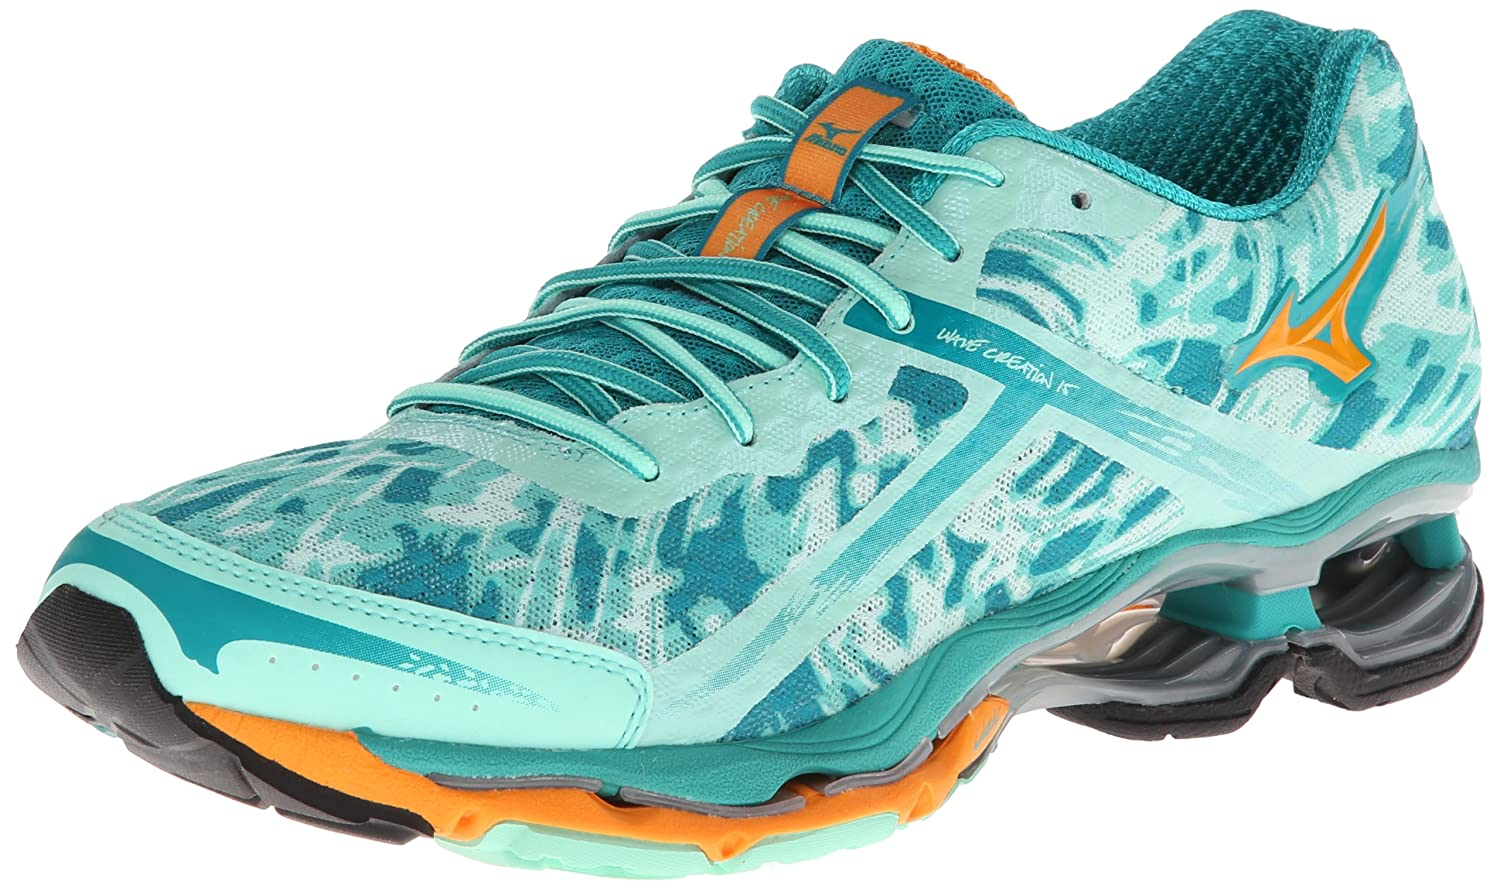 Mizuno Women's Wave Creation 15 Running Shoe B00EP05RZY 11 B(M) US|Cabbage/Bright Marigold/Columbia